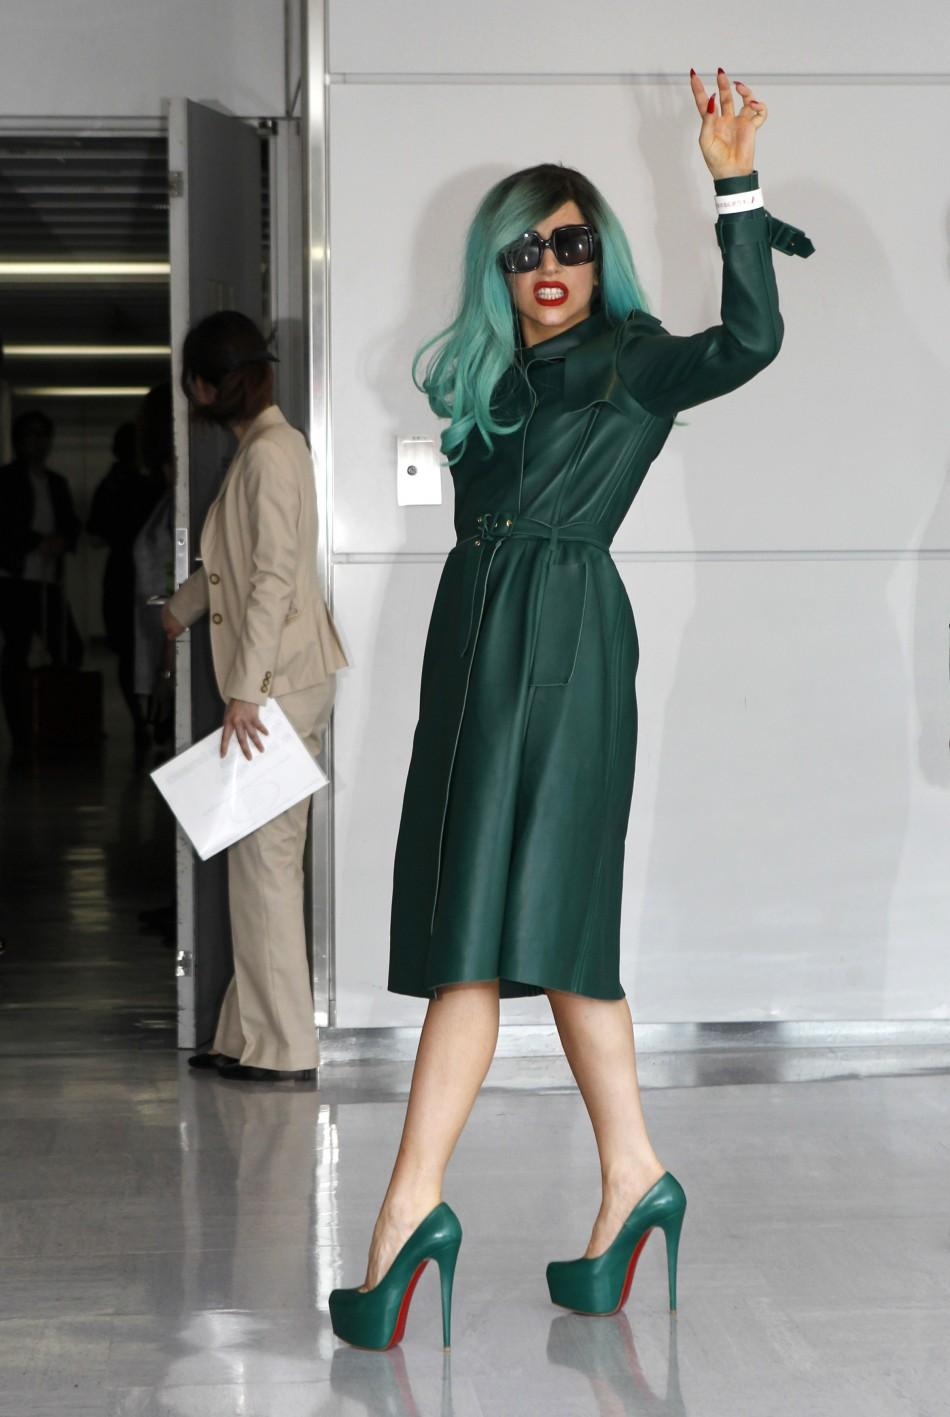 Lady Gaga & her 'larger than life' Shoes